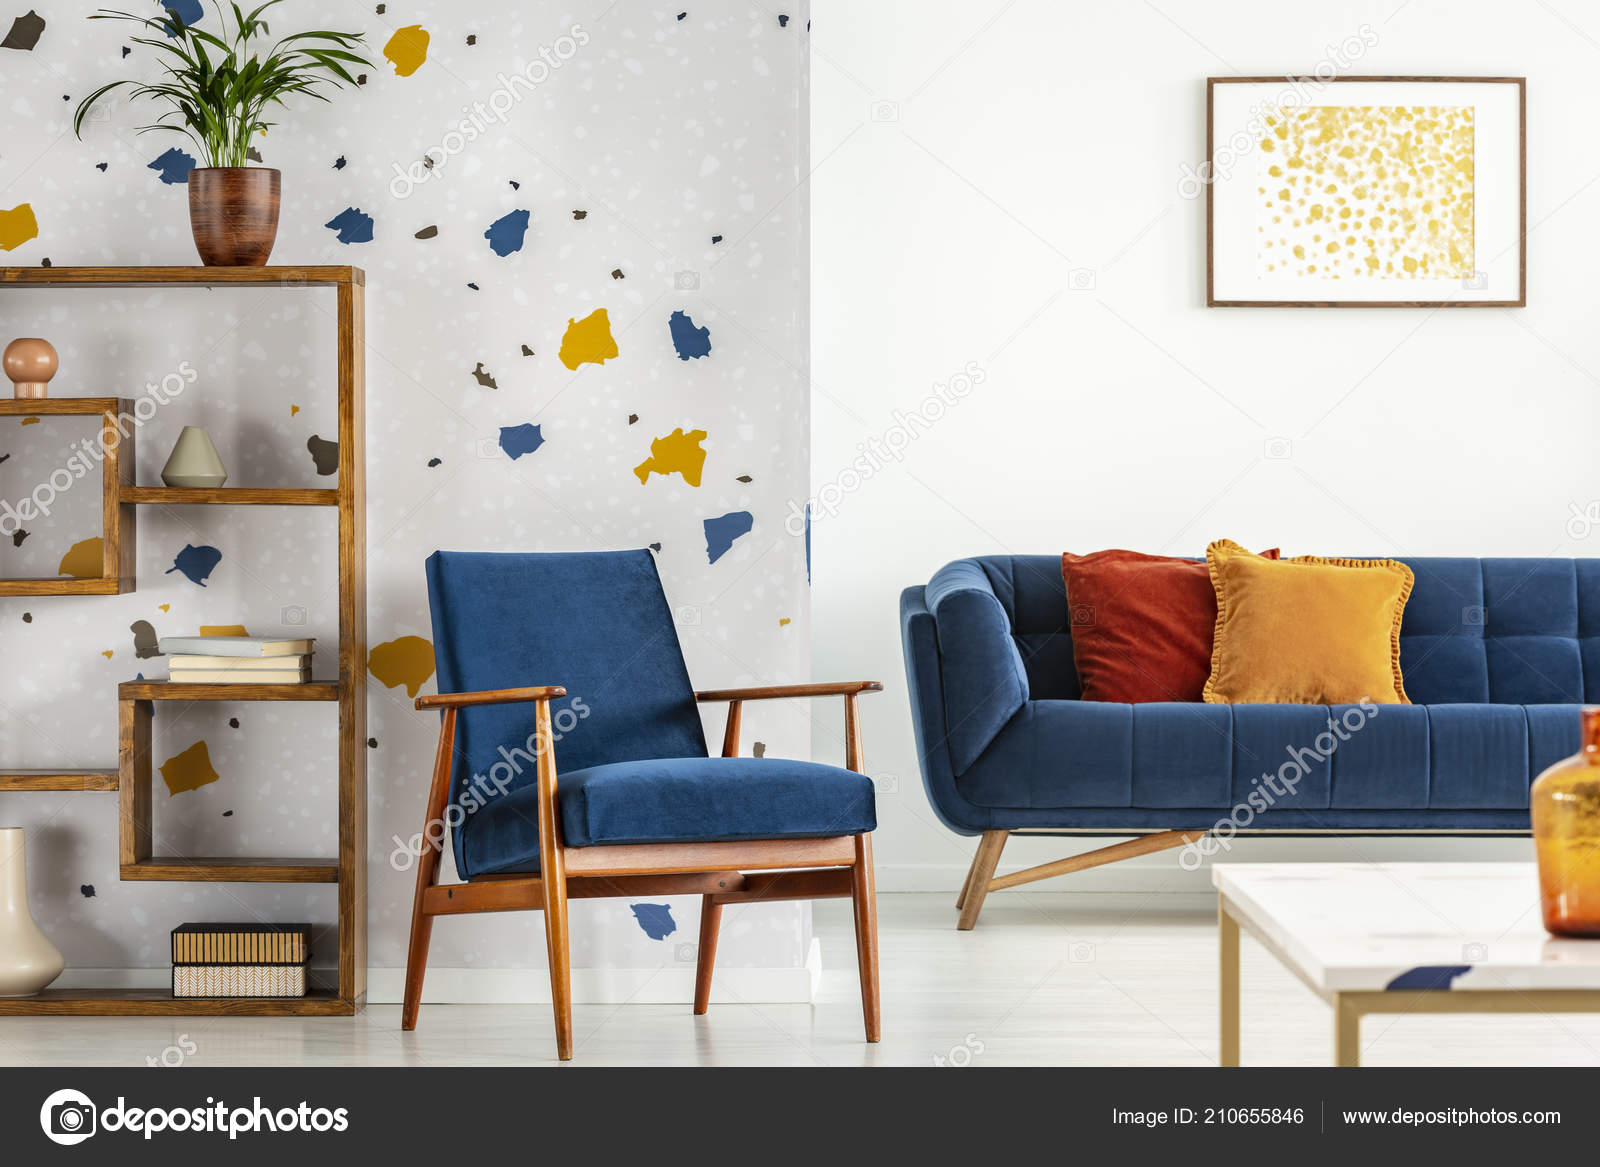 Armchair Couch Pillows Blue Orange Living Room Interior Poster Plant